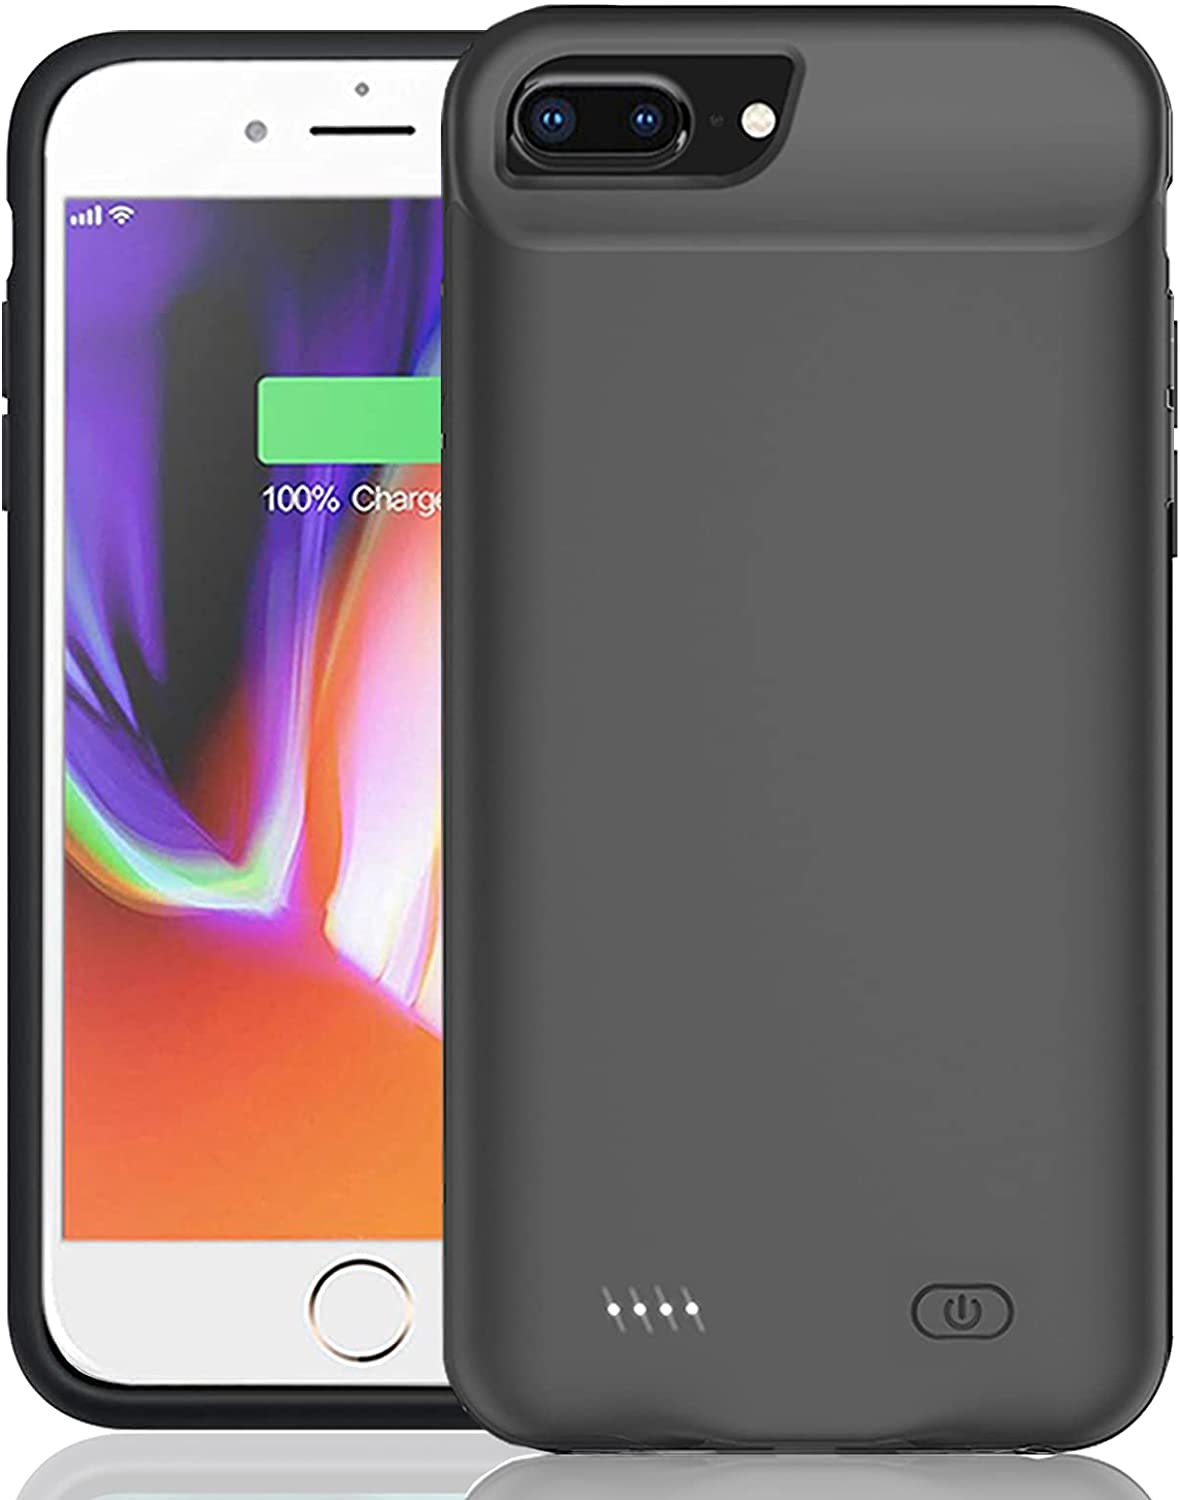 Battery Case for iPhone 6 Plus/6s Plus/7 Plus/8 Plus (5.5 inch), Enhanced 10000mAh Smart Rechargeable Portable Protective Charging Case Extended Battery Backup Pack Compatible Charger Case (Black)